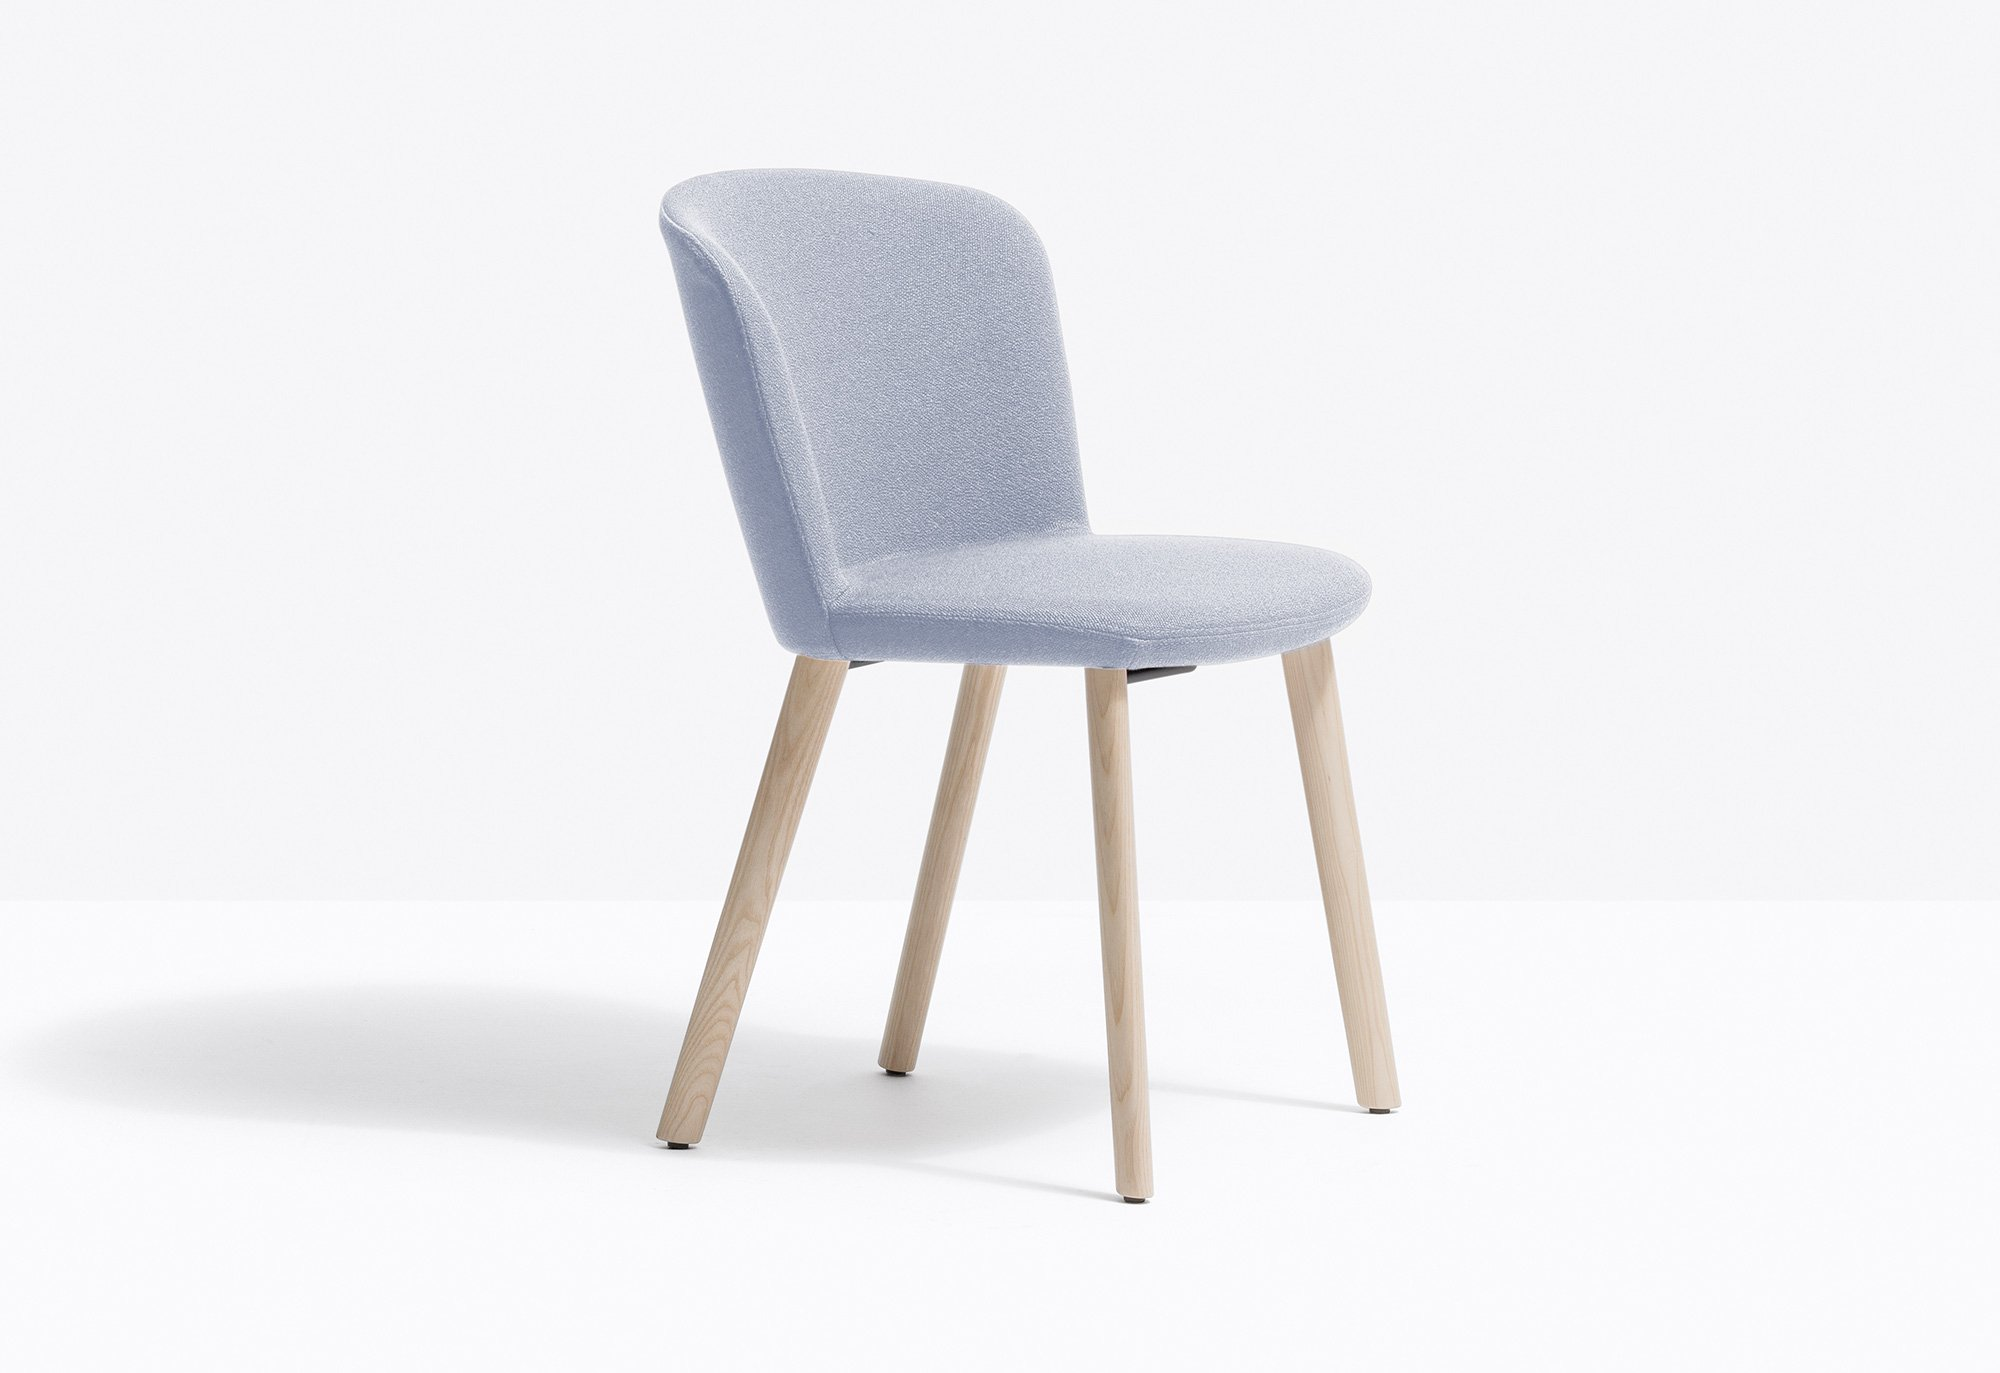 NYM Soft Chair from Pedrali